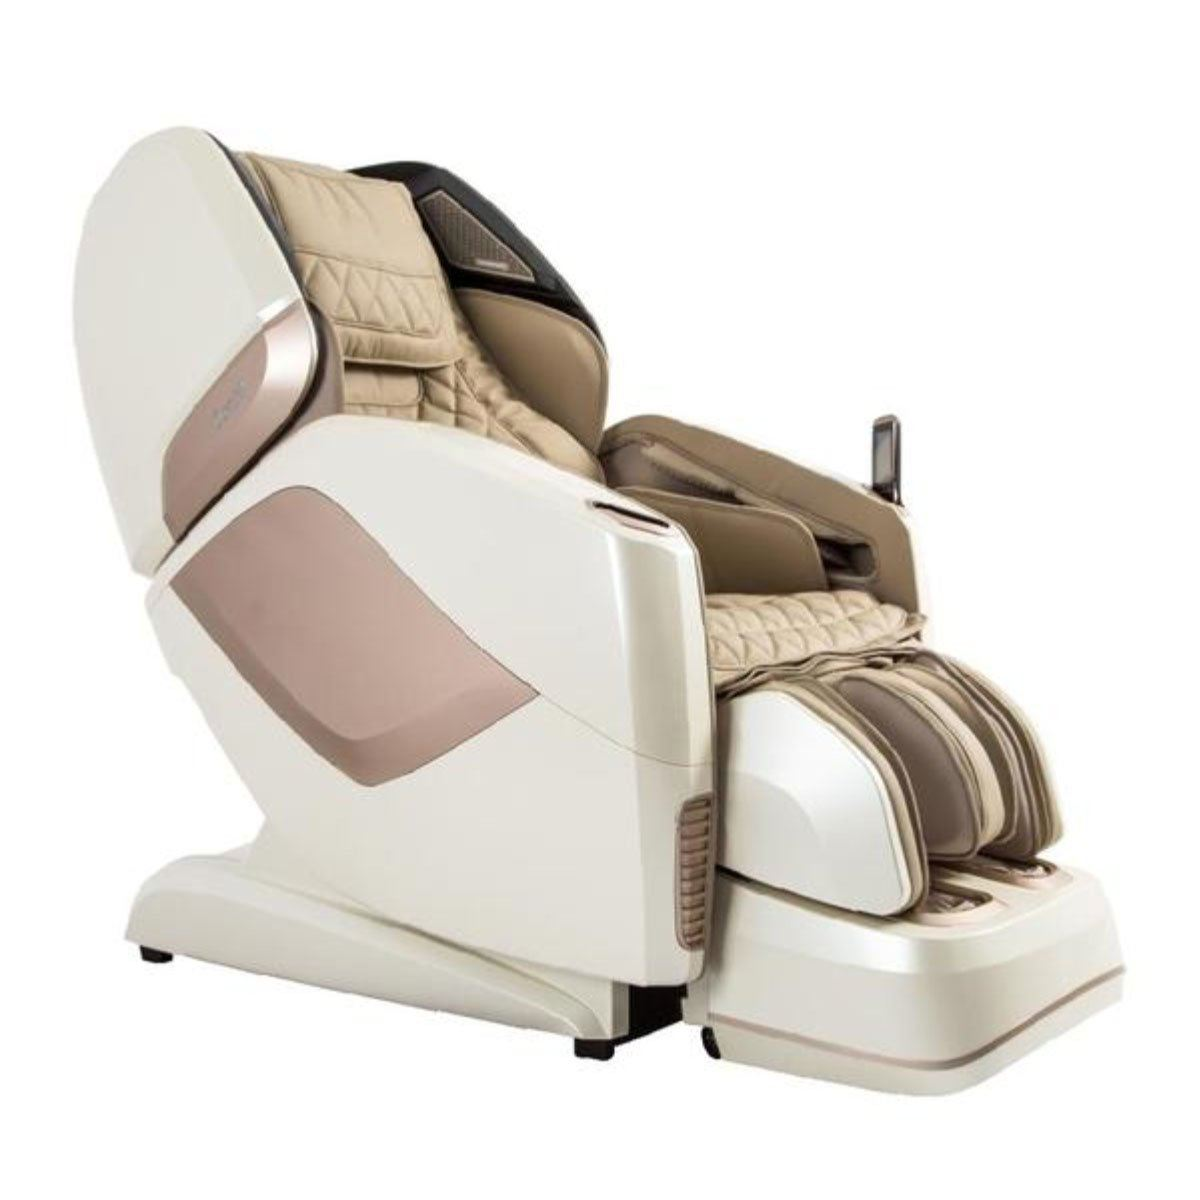 Massage Chair - Osaki OS-4D Pro Maestro Taupe Massage Chair